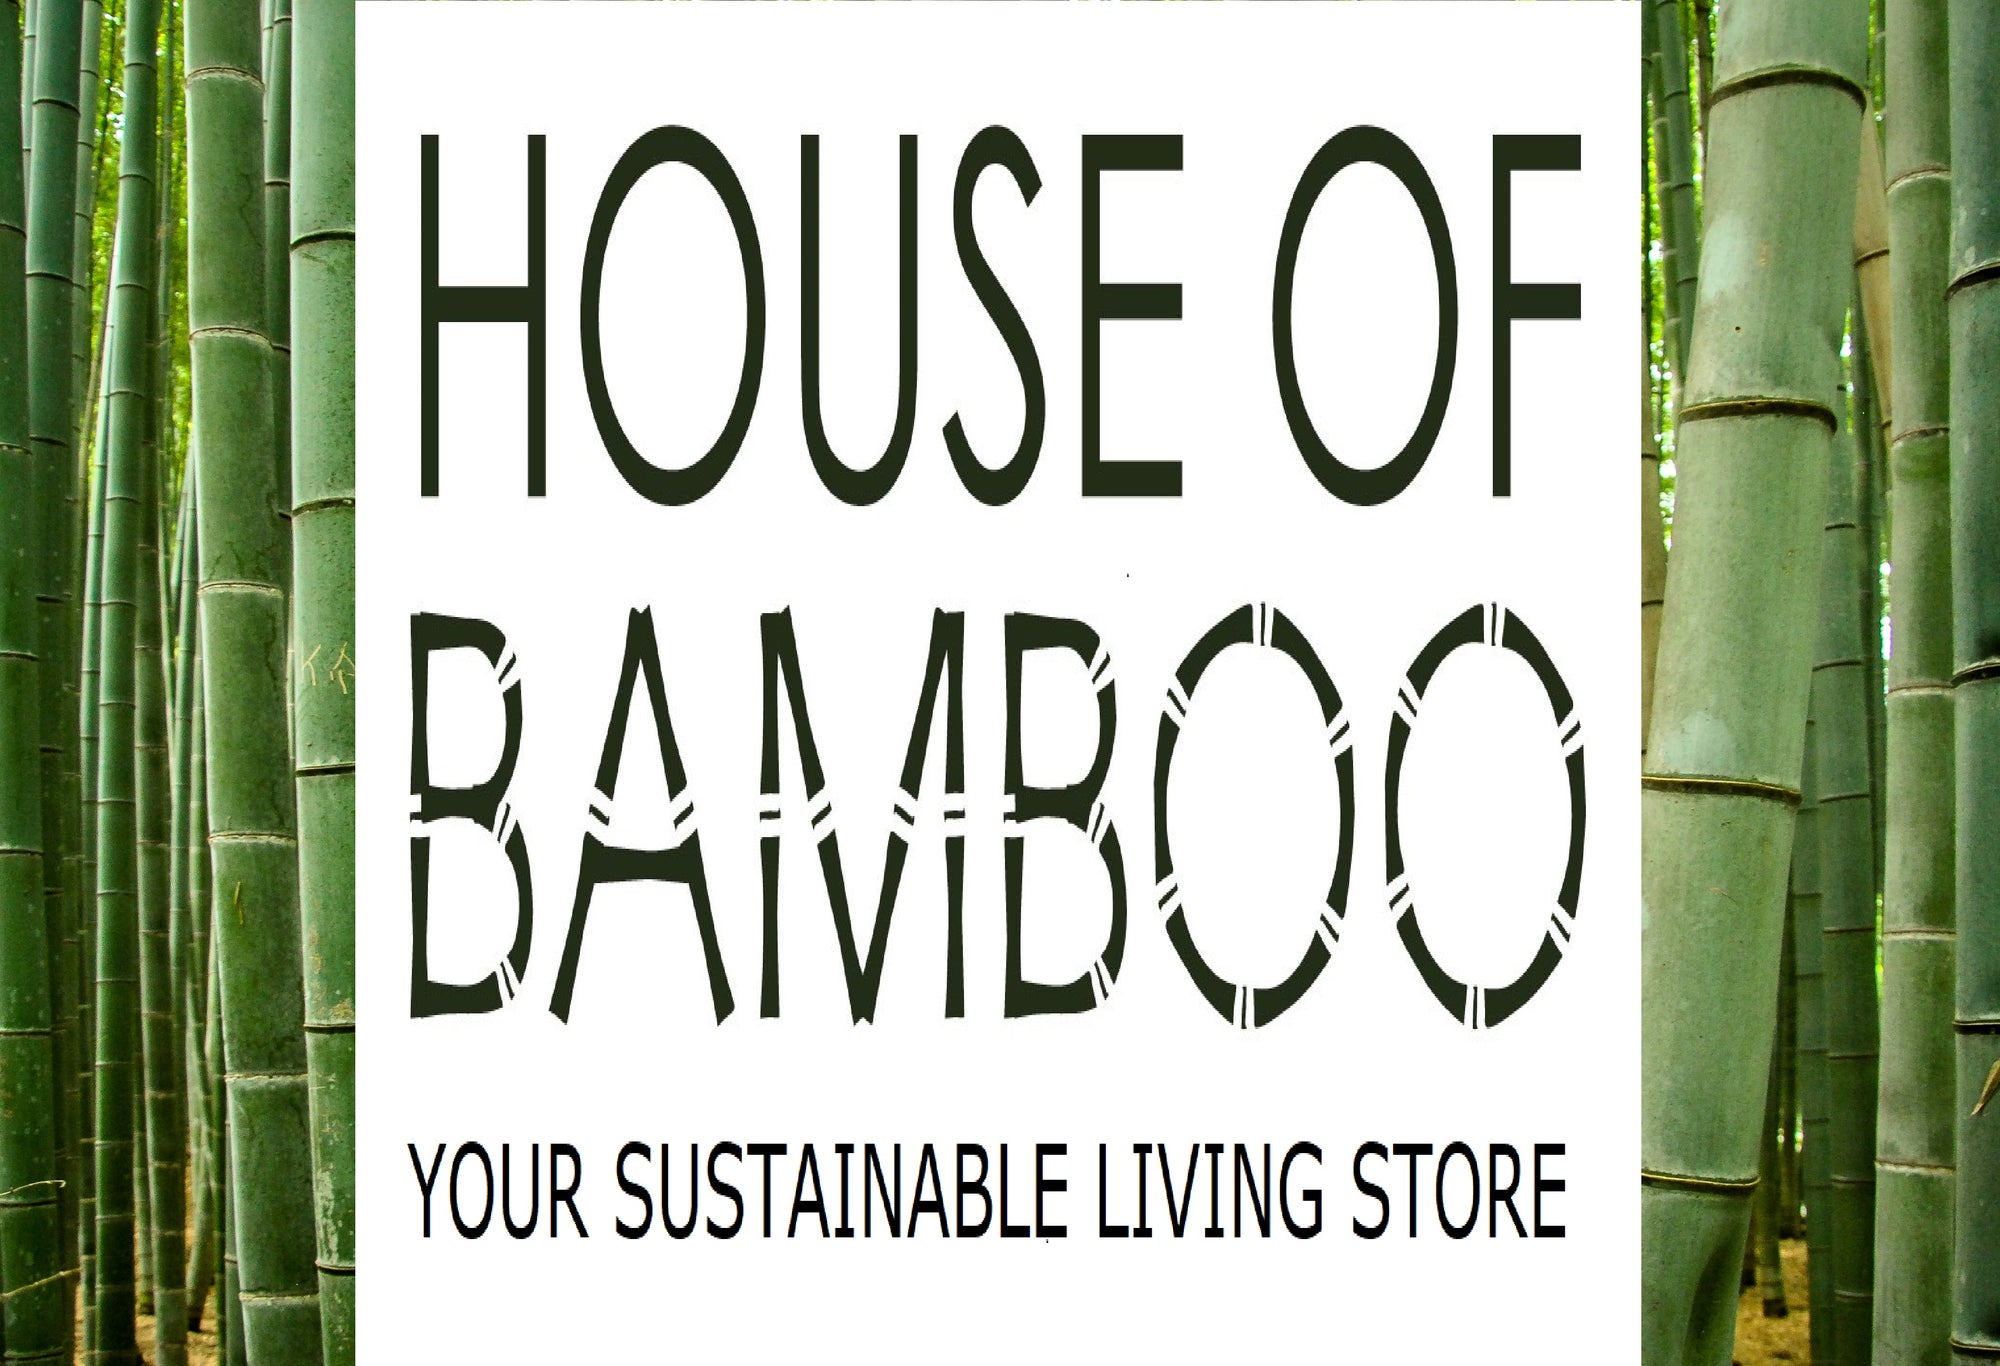 House Of Bamboo is a Sustainable Lifestyle Brand with a focus on being Environmentally and Socially Responsible.